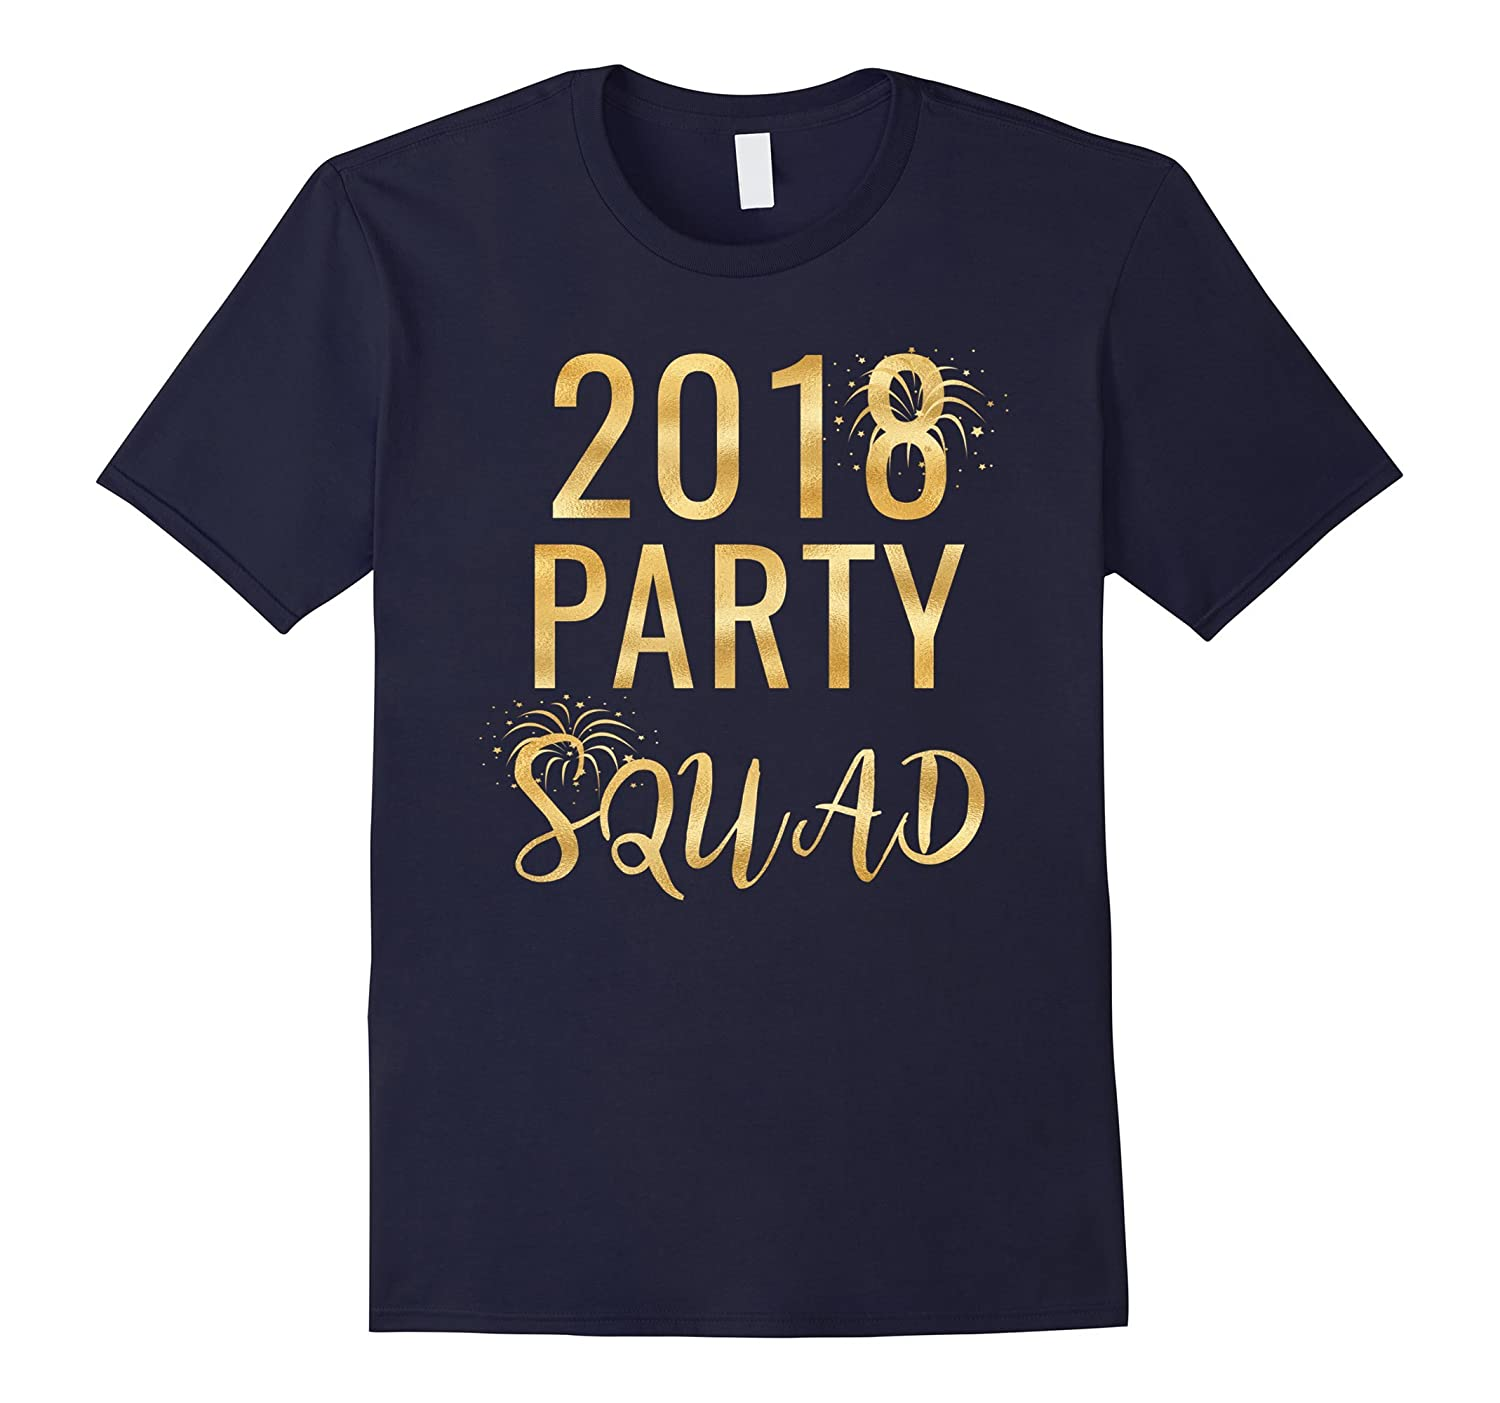 2018 New Year's Eve Party Squad Matching Gold Glitter Tees-ah my shirt one gift